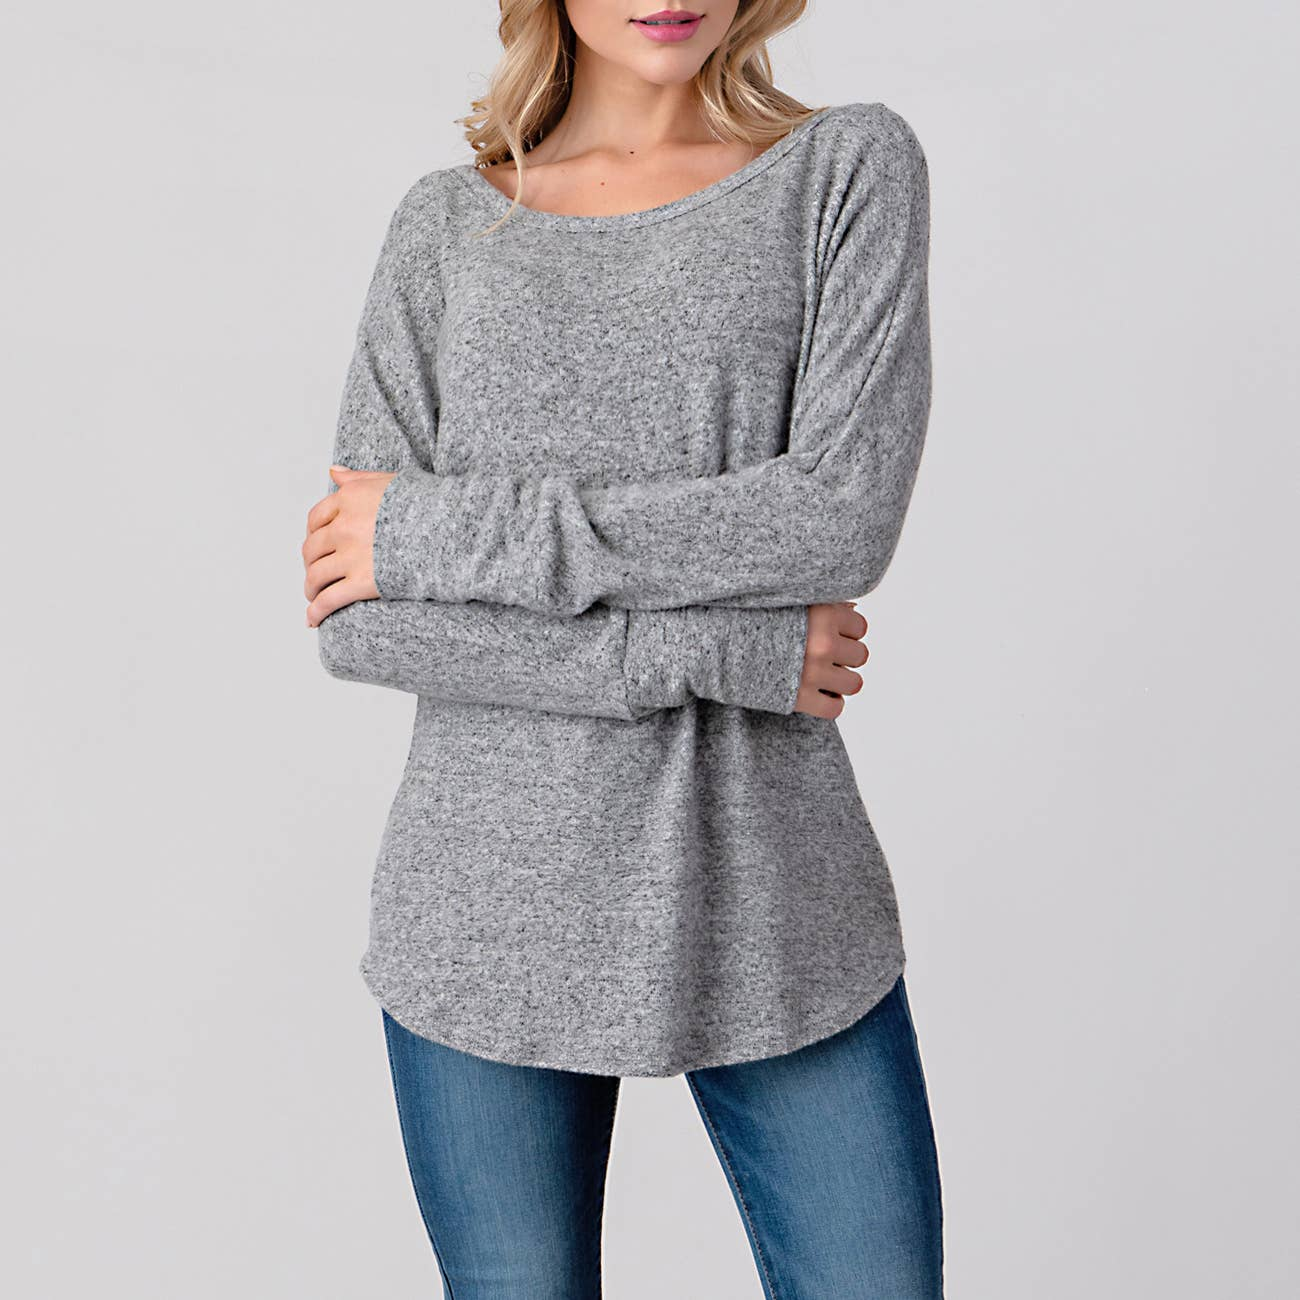 Natural Life Heather Grey Sweater Top